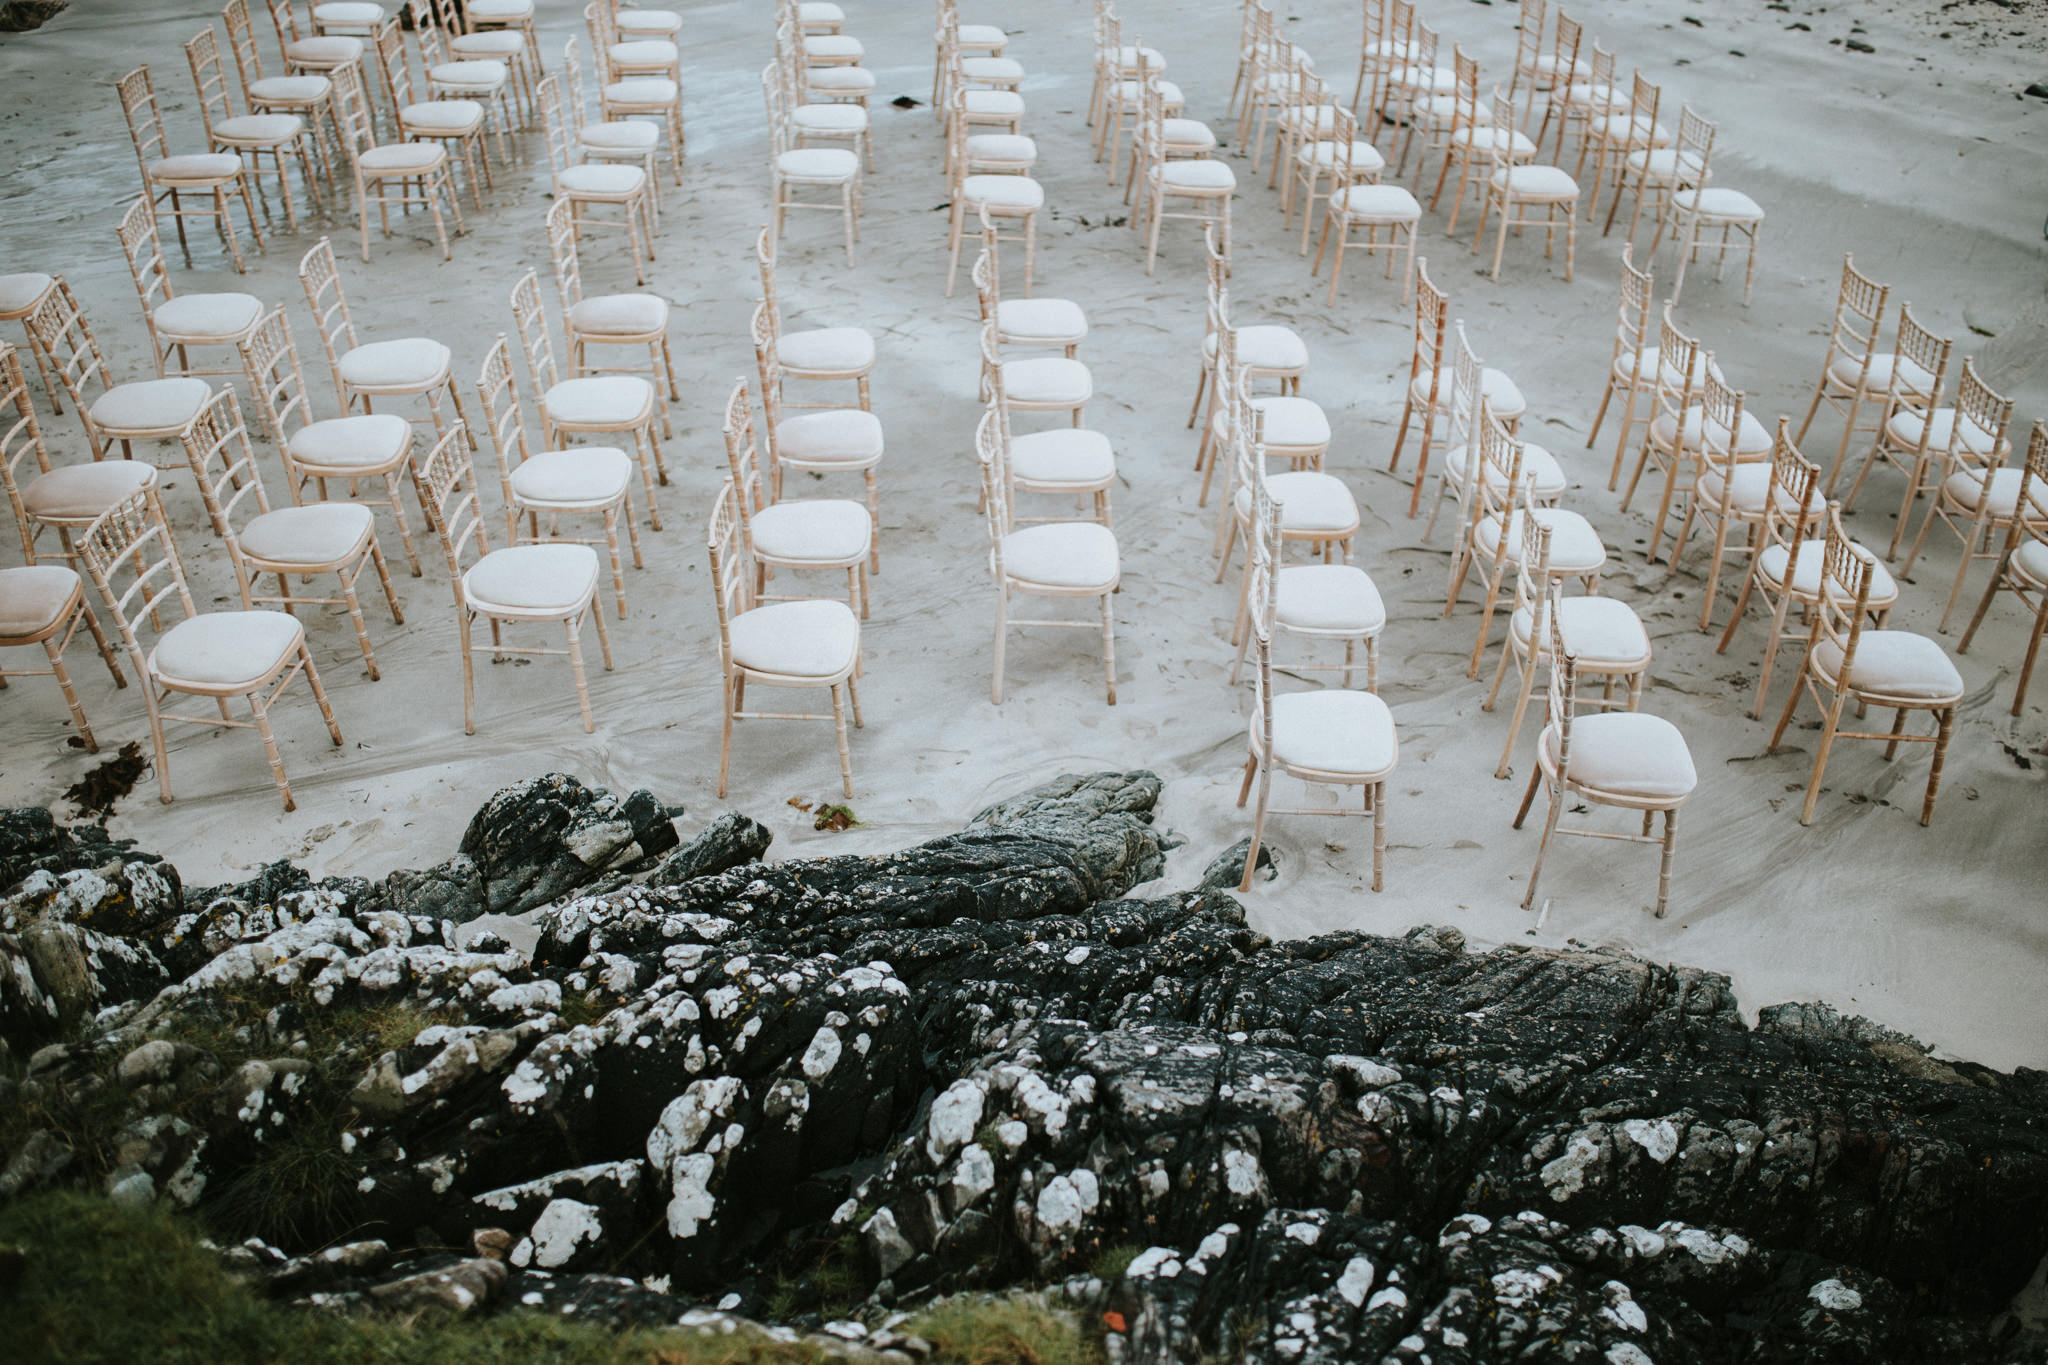 Chairs are lined up at the beach for the wedding ceremony.